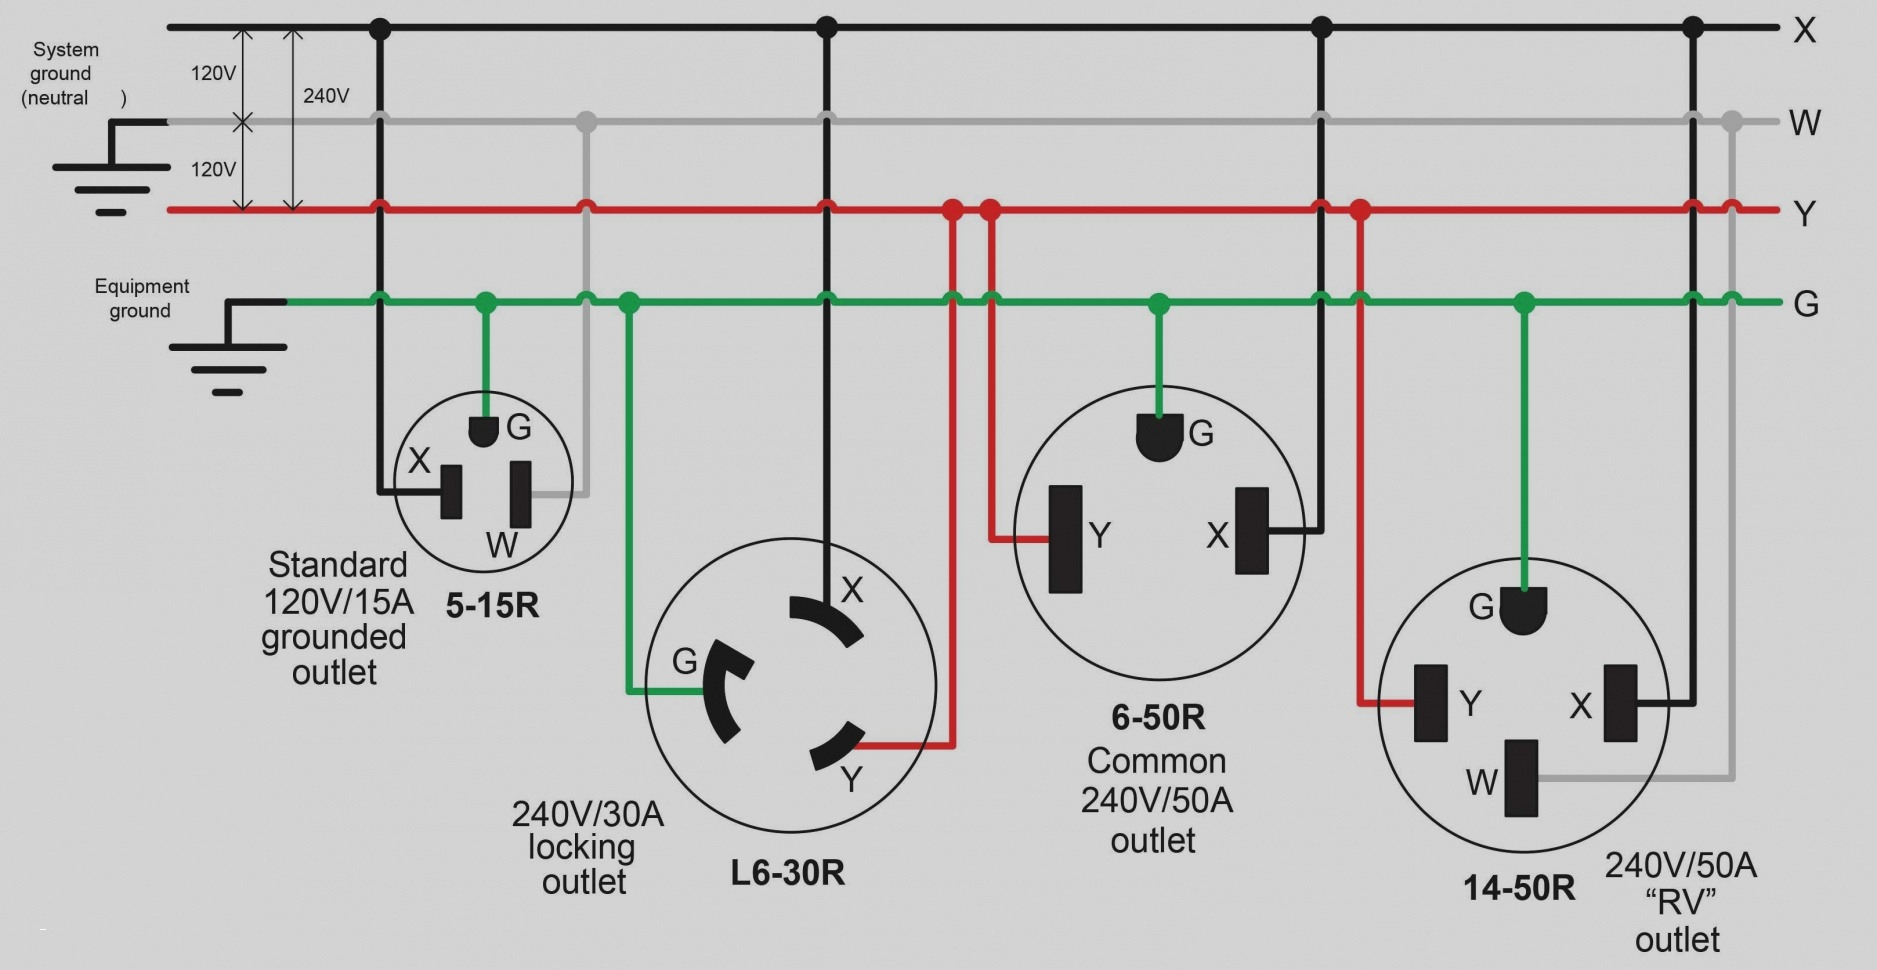 l14 30r wiring diagram Download-l14 30r wiring diagram Collection Ground Wire Diagram Best L14 30 Wiring Diagram Download 1 DOWNLOAD Wiring Diagram Sheets Detail Name l14 30r 8-s